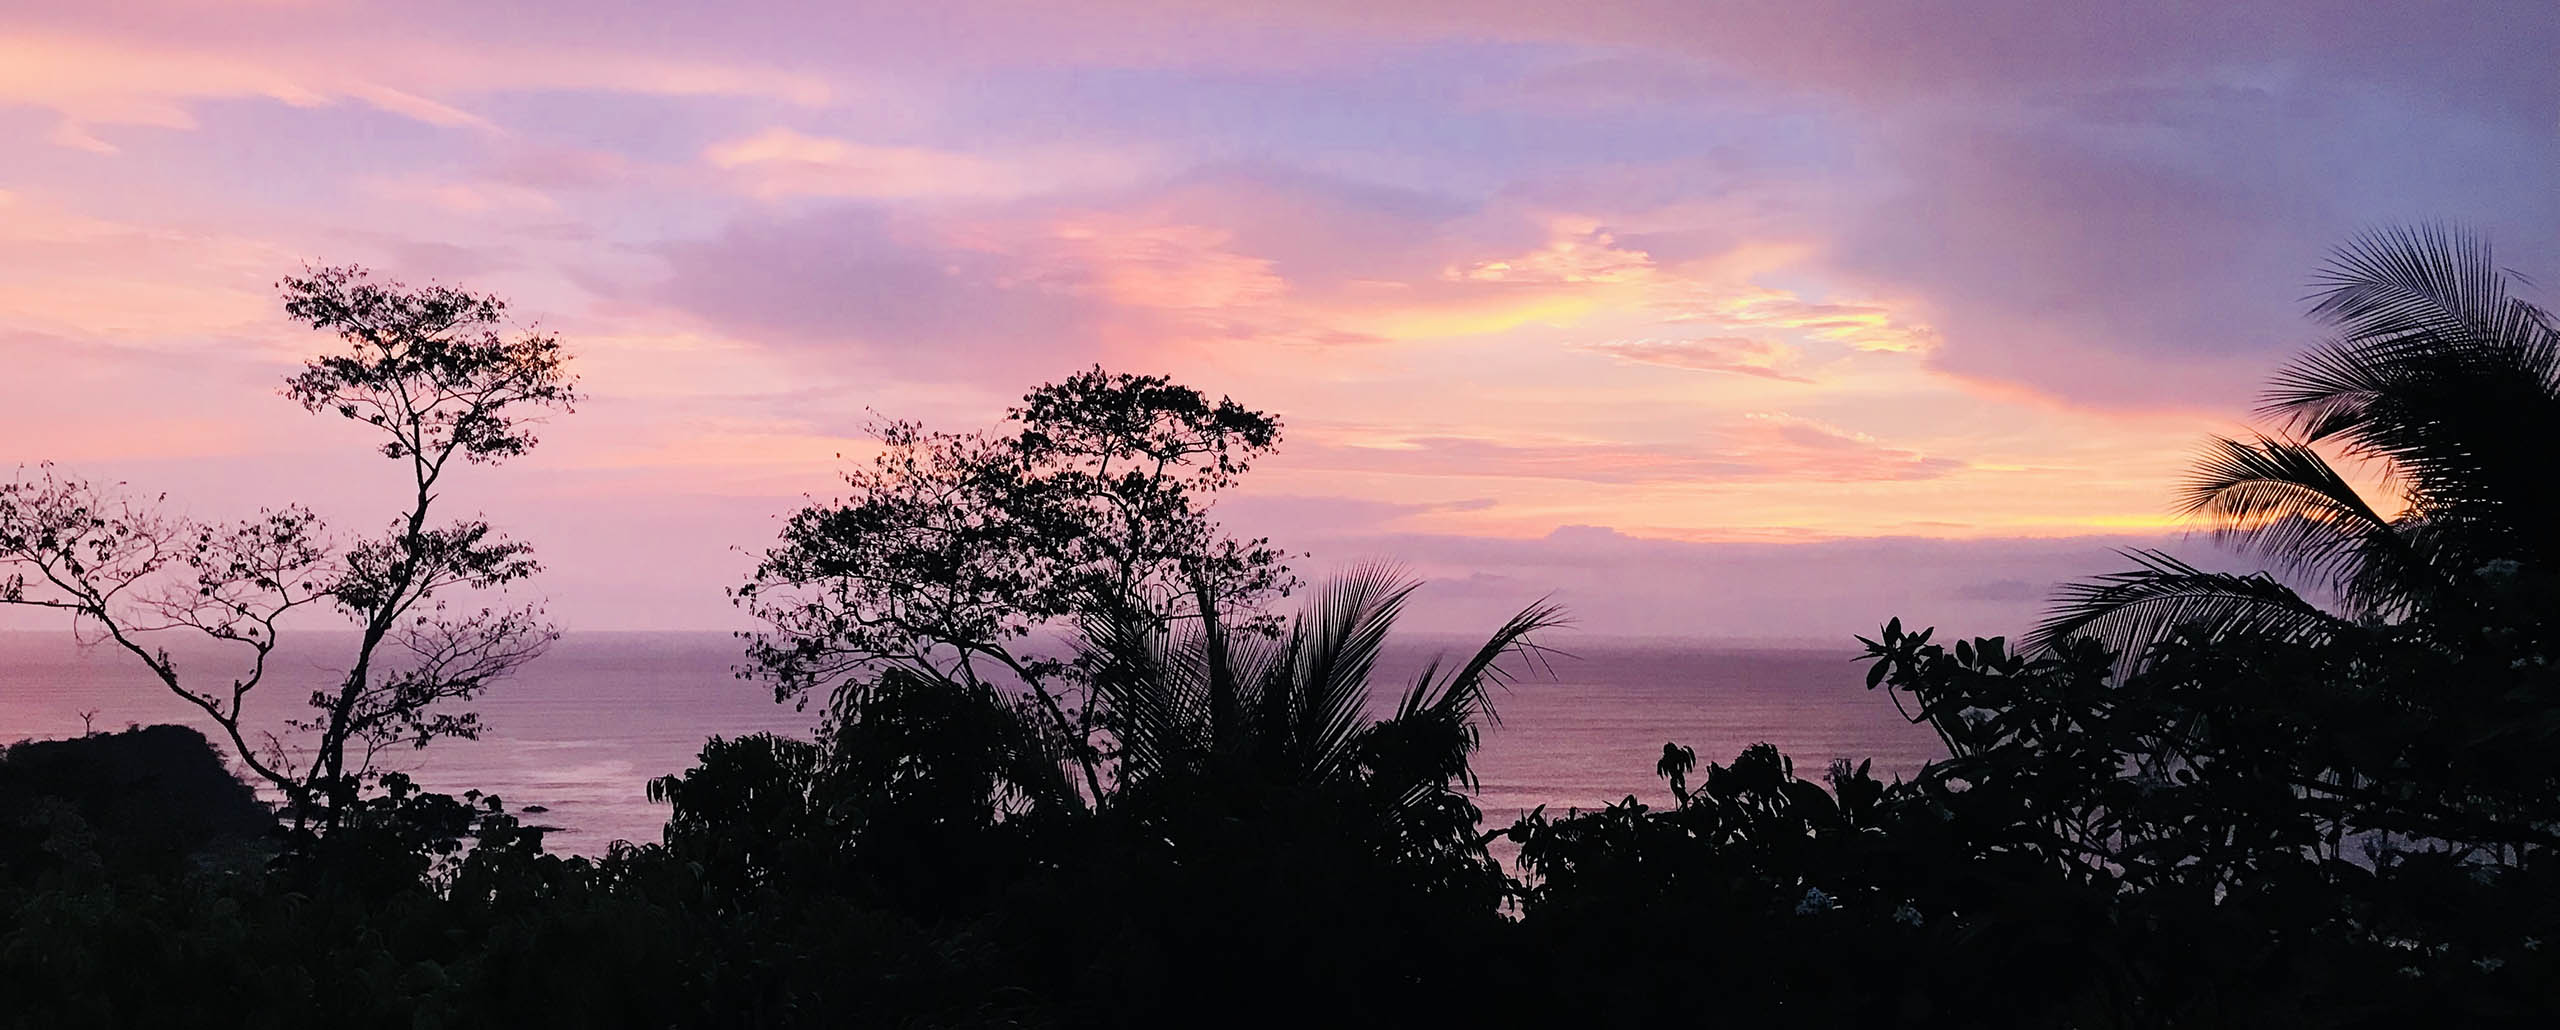 Our Experience at Latitude 10: an eco-paradise in Costa Rica